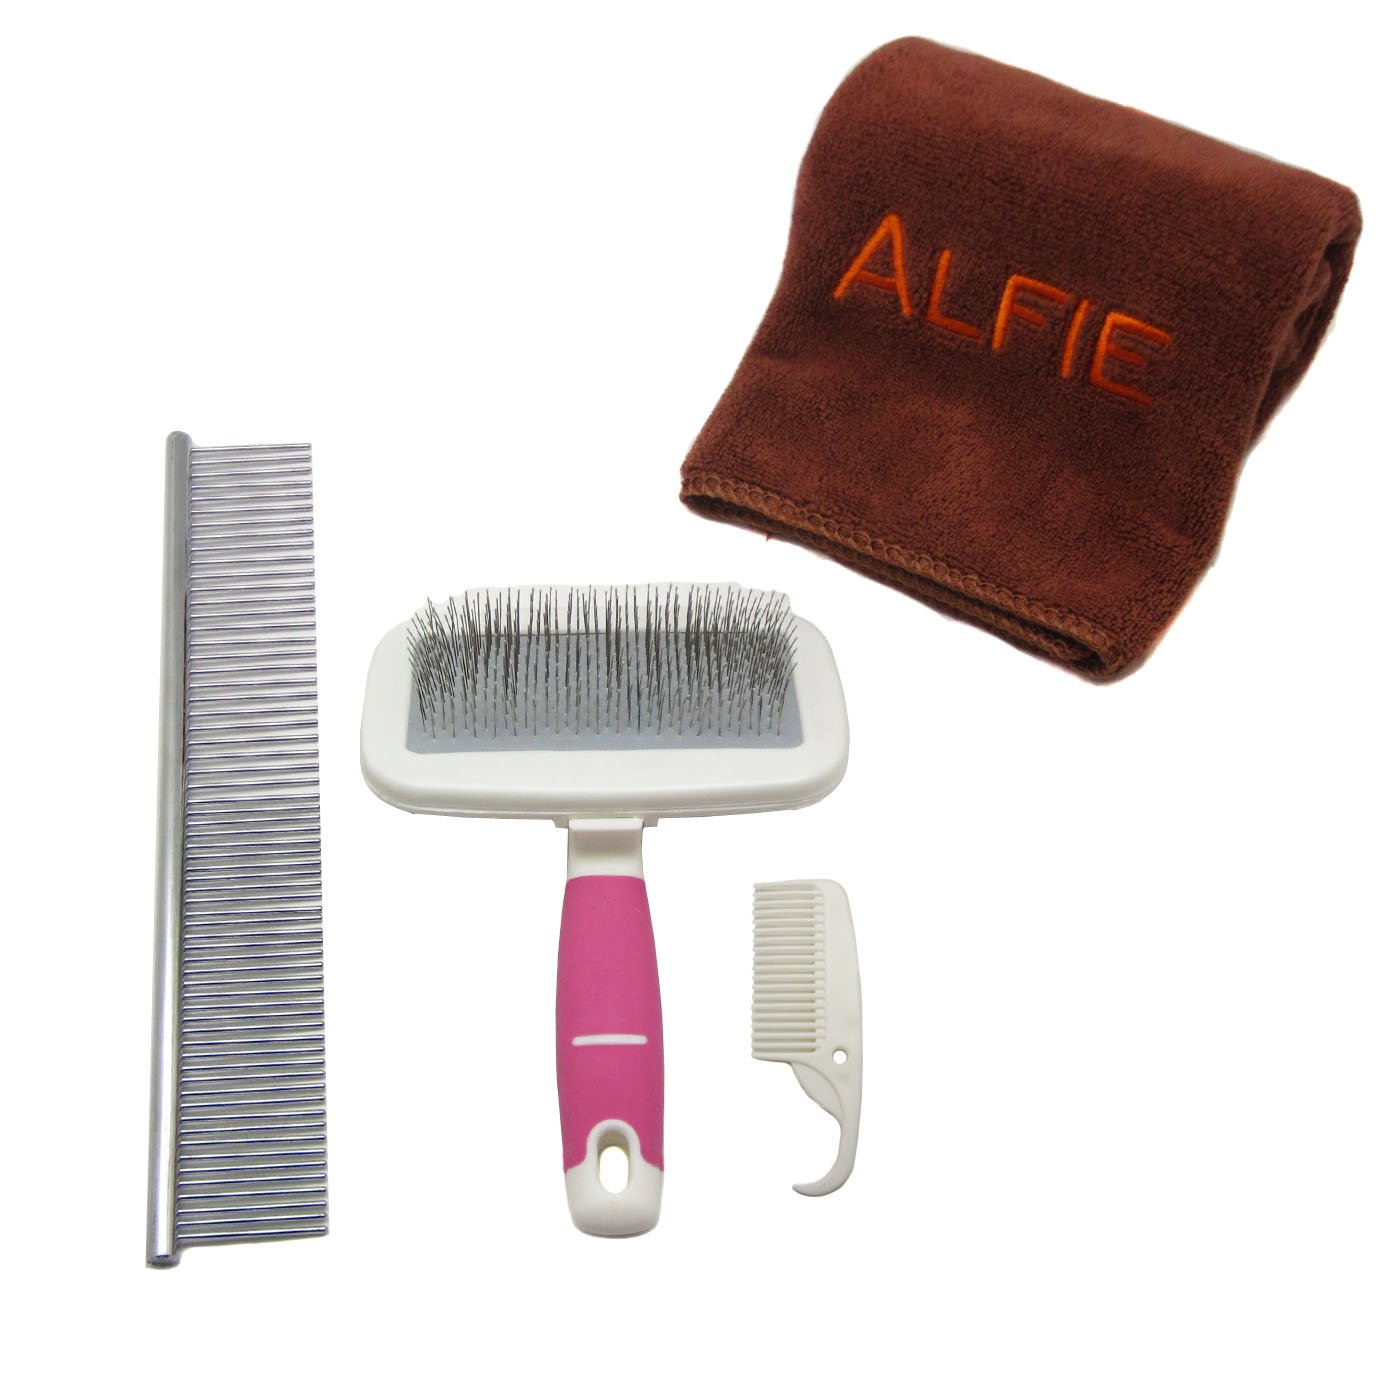 Alfie Pet by Petoga Couture - Kalin Soft Slicker Brush and Groomer Comb Set with Microfiber Fast-Dry Washcloth, Color: Pink, Size: Small